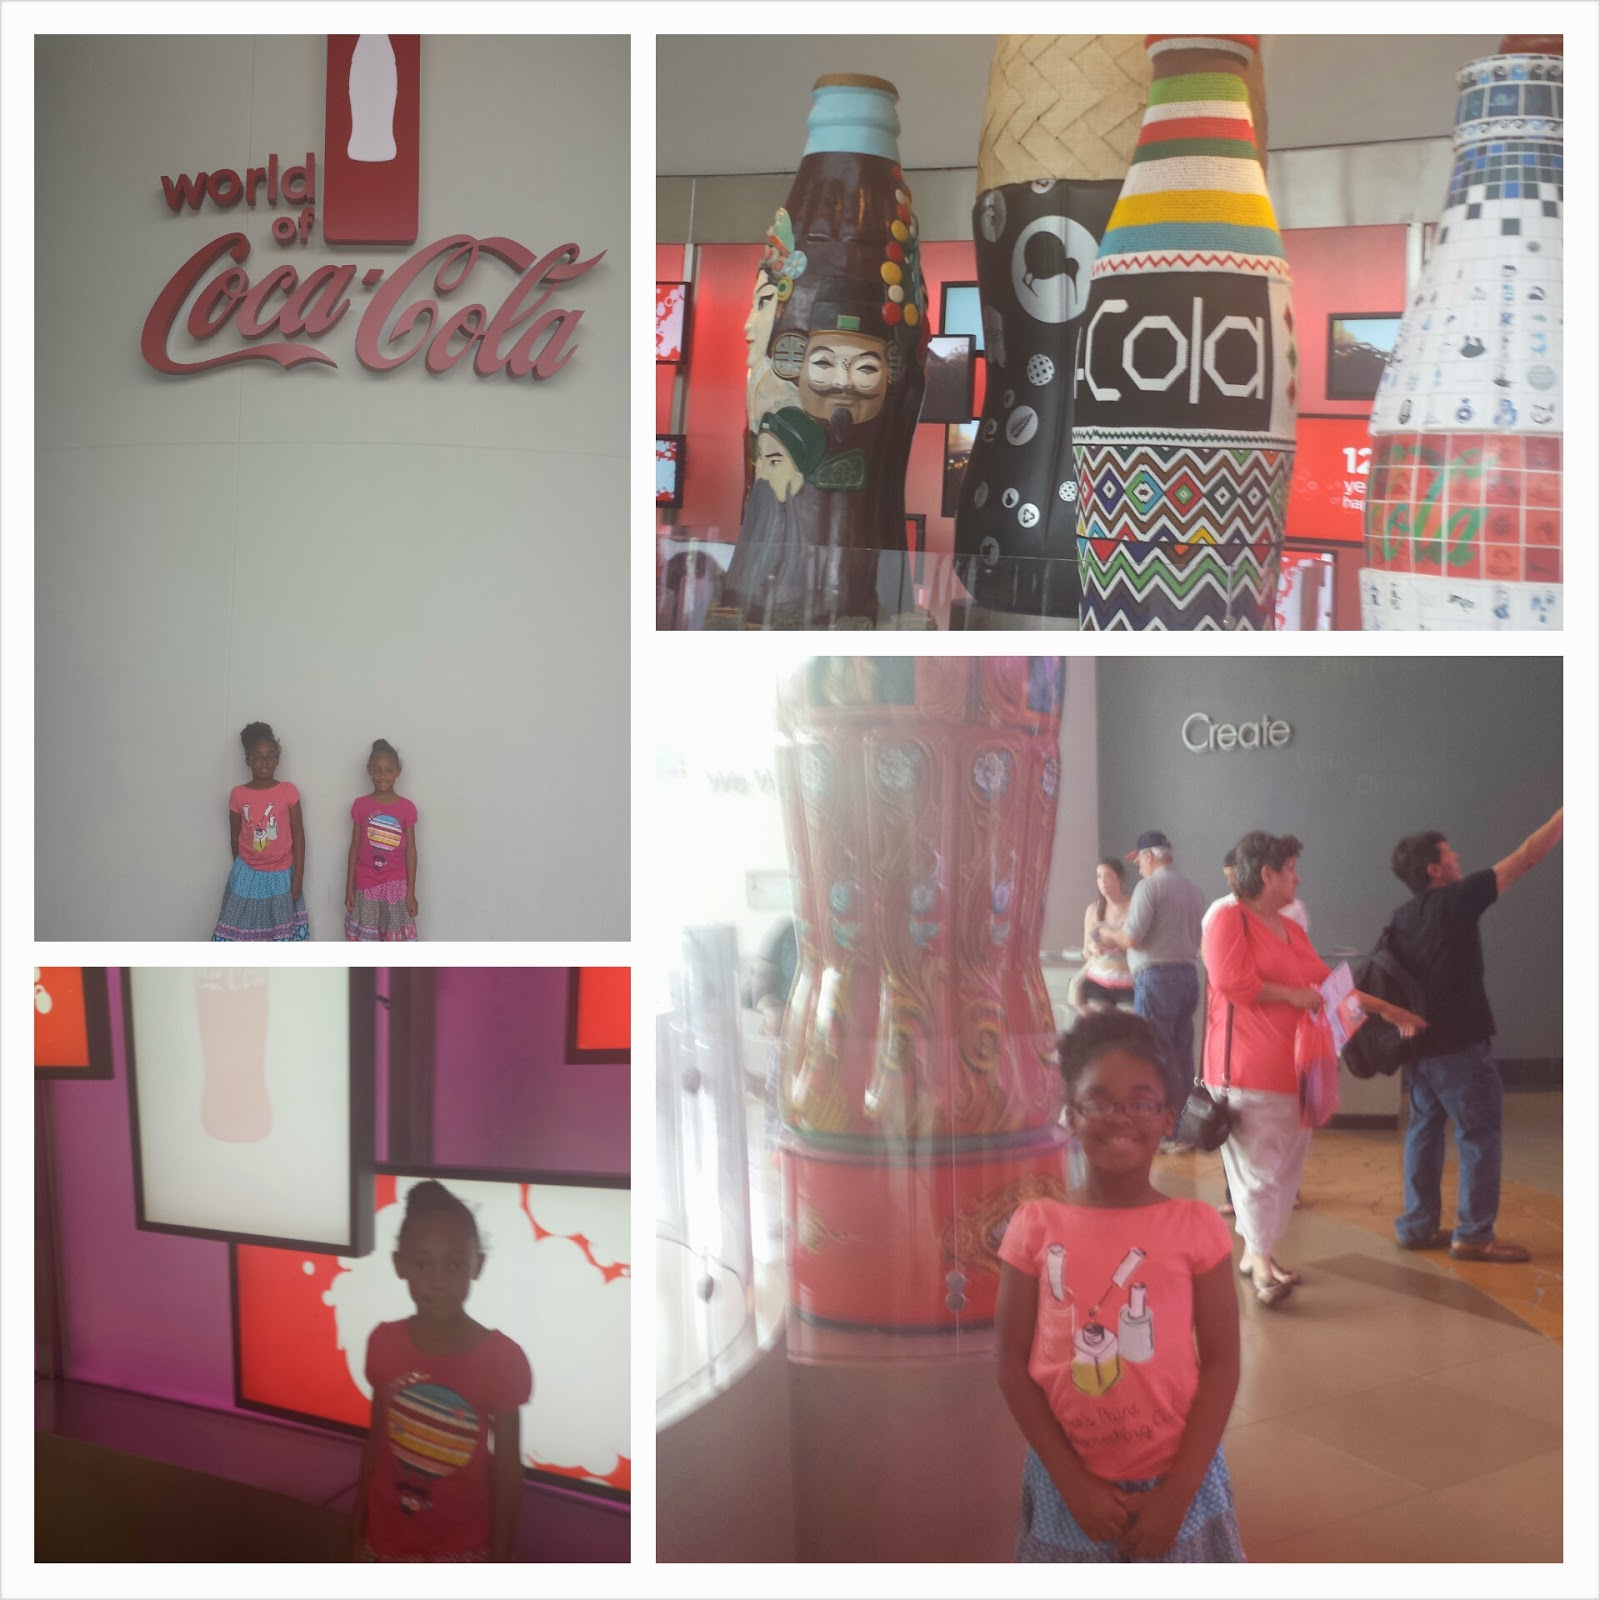 World of Coca Cola Summer Kick Off Event Recap via ProductReviewMom.com